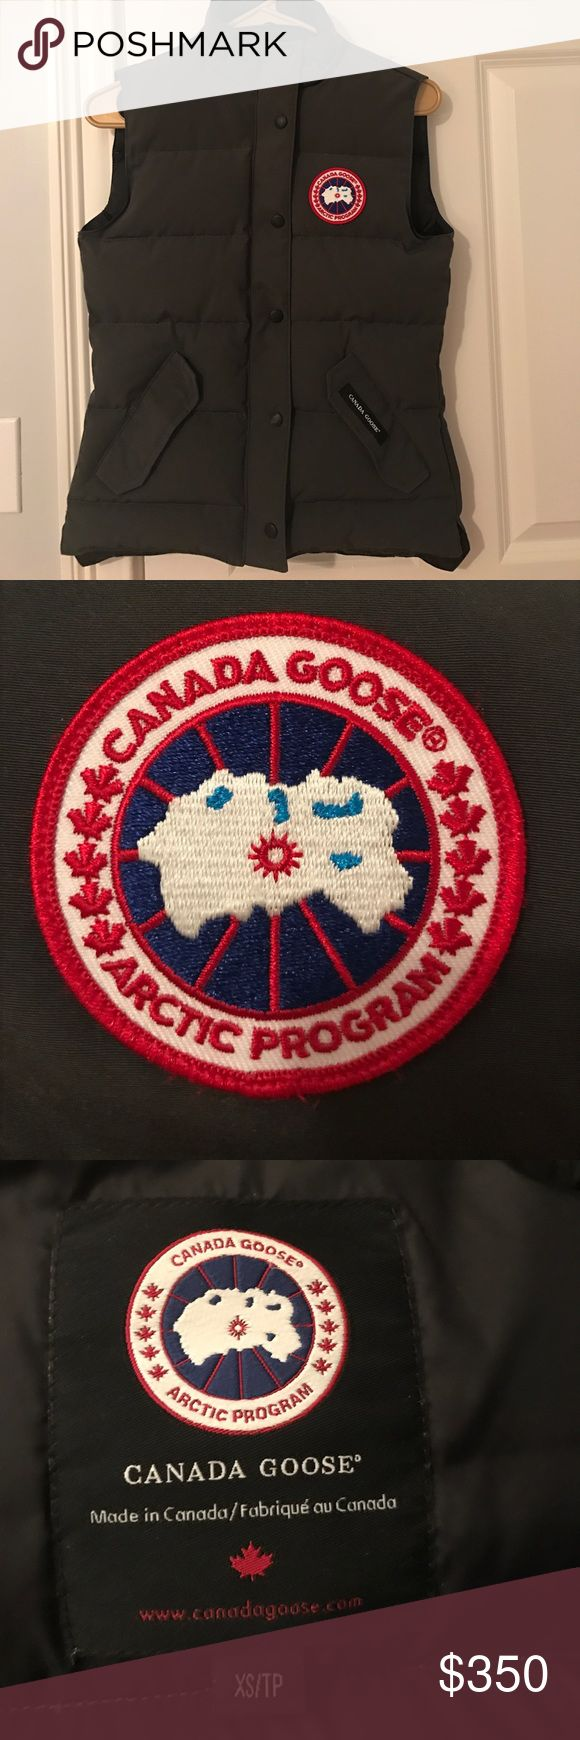 Canada Goose Vest Canada Goose vest in charcoal, size xs. Only worn two or three times Canada Goose Jackets & Coats Vests